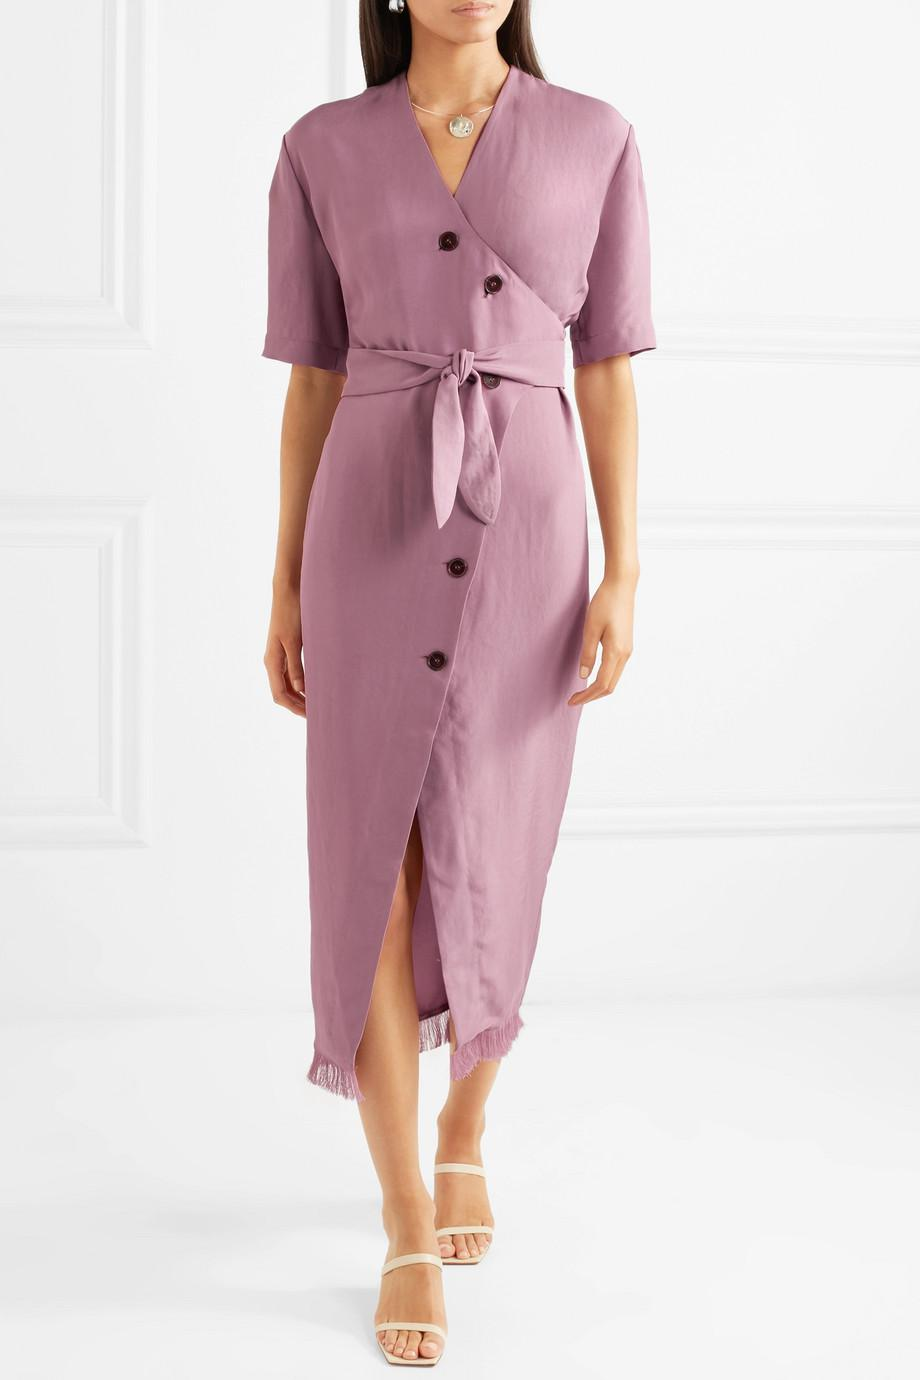 Belted Frayed Satin-twill Midi Dress - Purple Nanushka Sale Footlocker Outlet Choice Free Shipping Low Cost With Paypal Sale Online EDzBCRZ